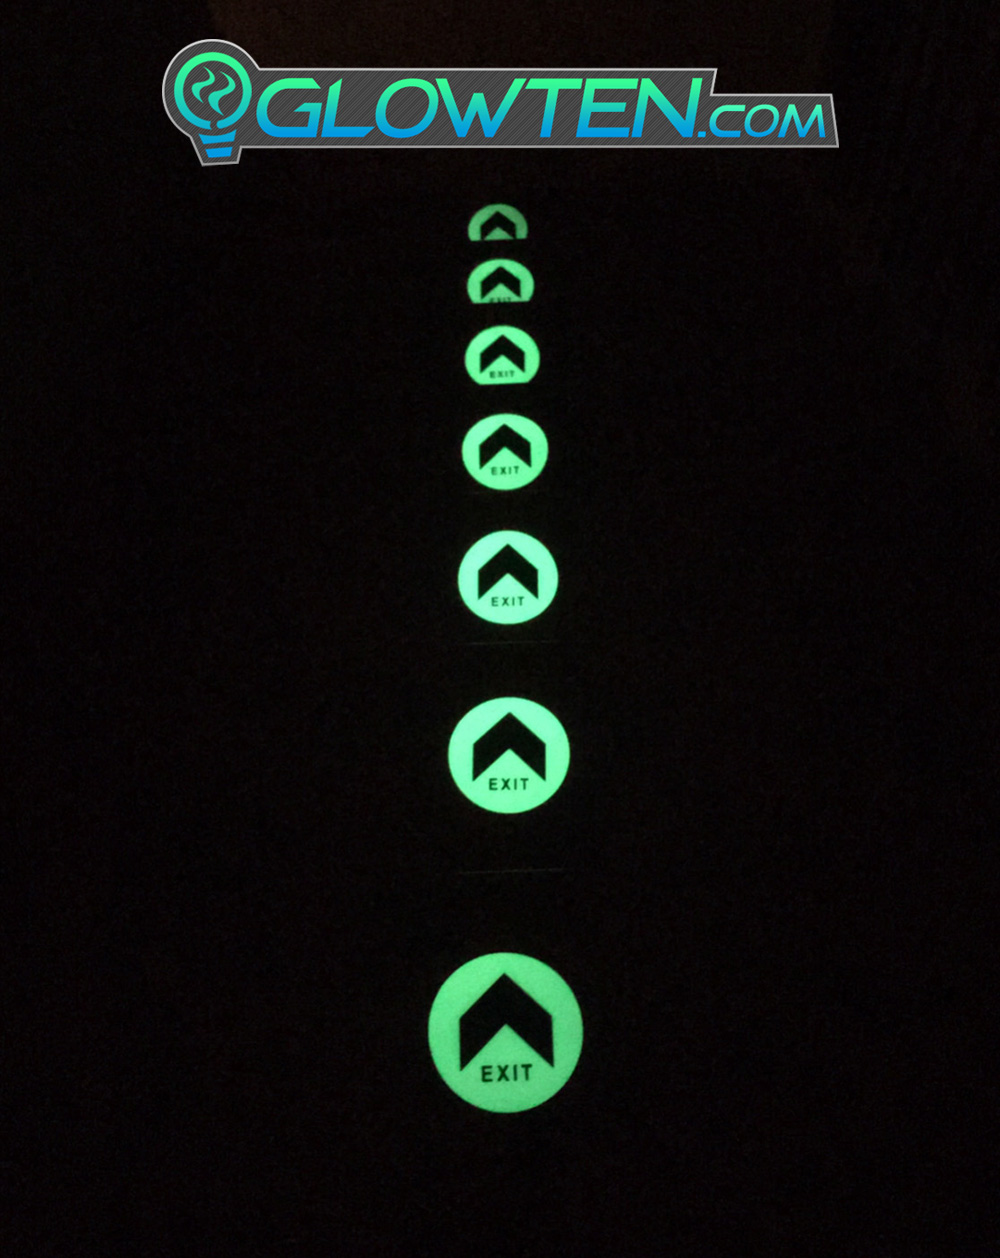 GLOWTEN.com - Photo Luminescent Vinyl Sticker For Walls And Floors Large Arrow Fire Exit Sign Emergency Glow In The Dark Eco Friendly Photoluminescent Pigment Pvc Plastic With Adhesive picture photo cap preview pic 8